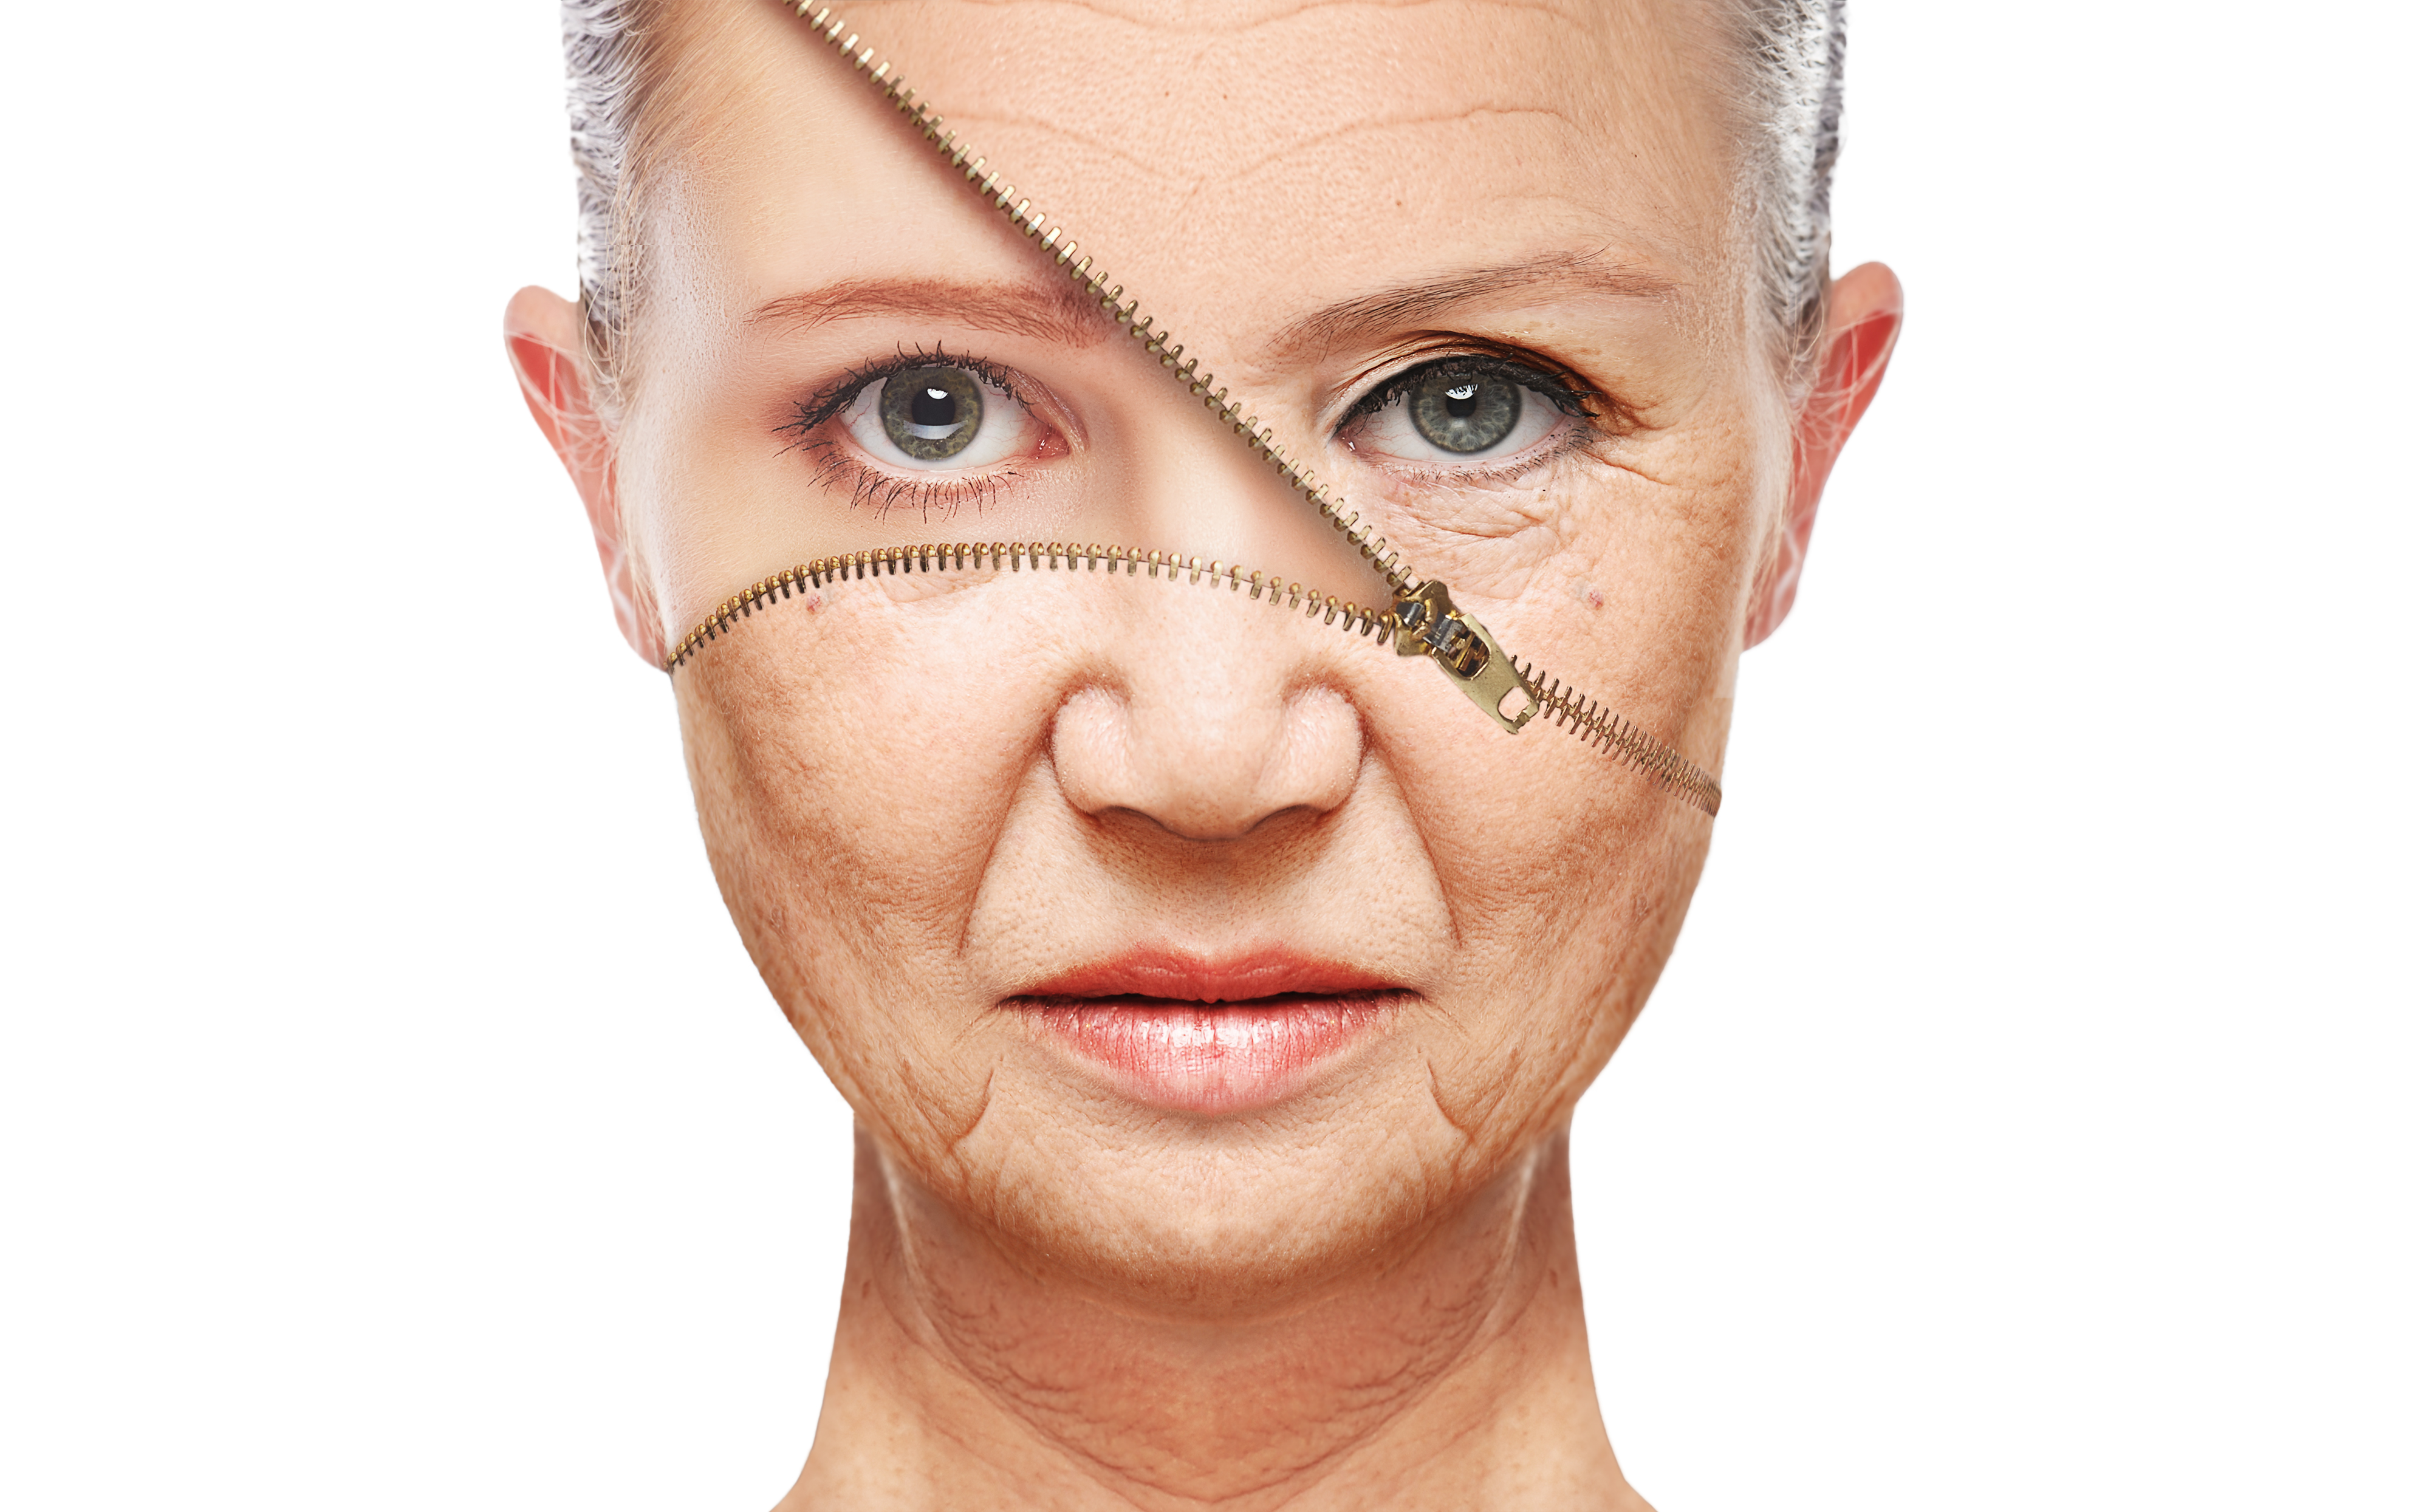 skin rejuvenation treatments for skin conditions